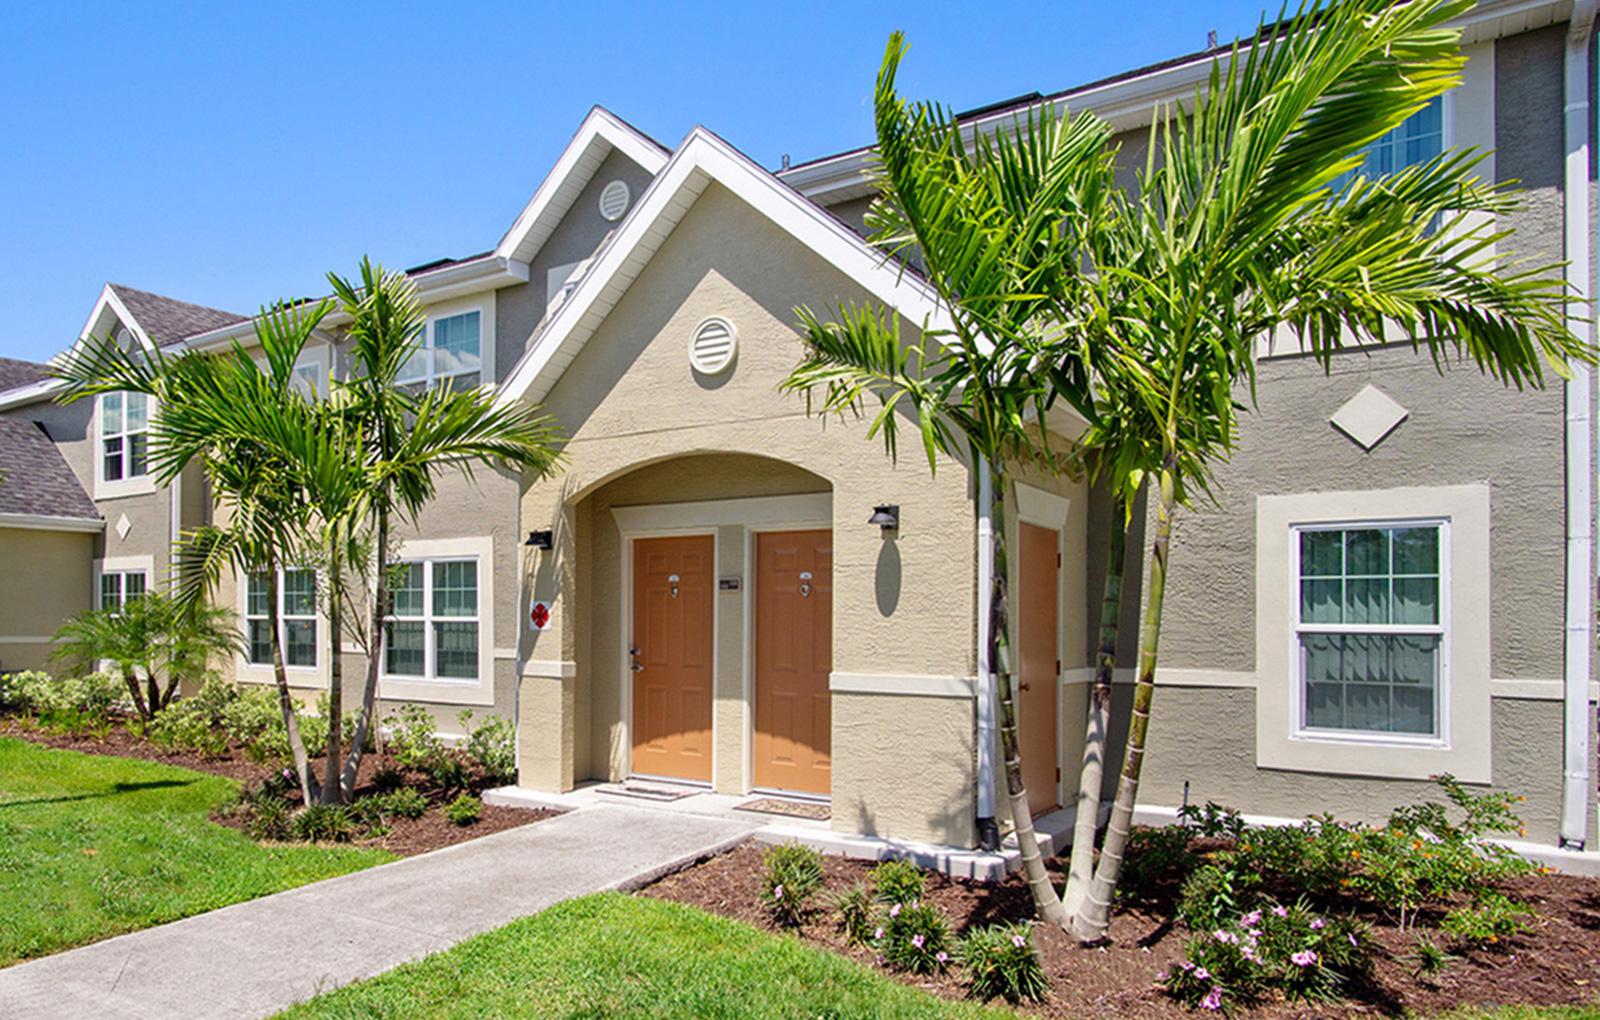 Finding Cheap Apartments in Miami, Florida